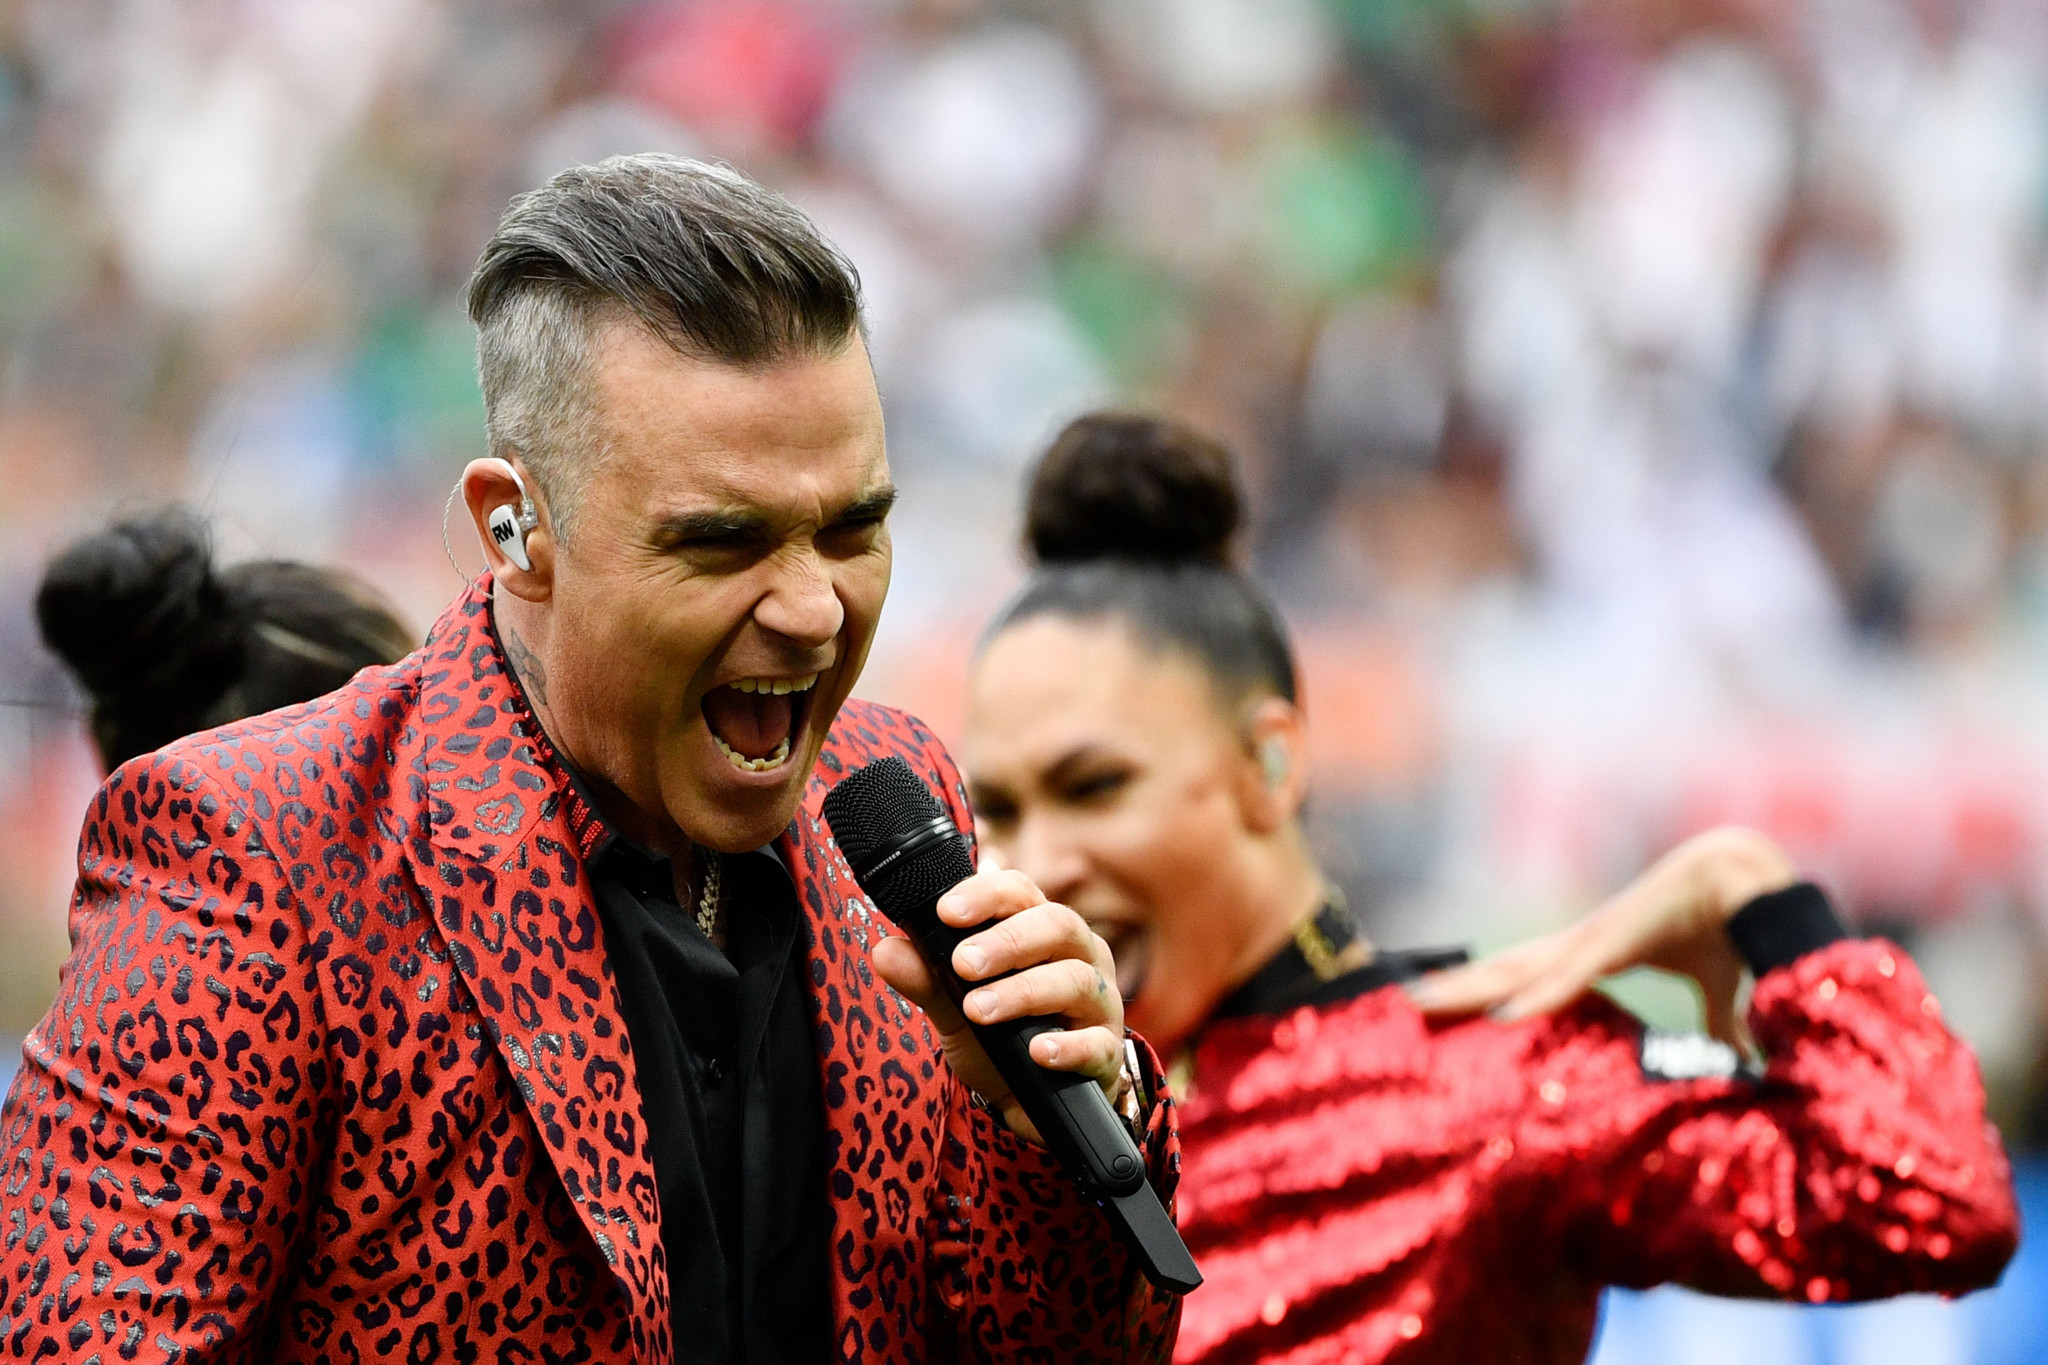 Robbie Williams performed during the Opening Ceremony ©Getty Images